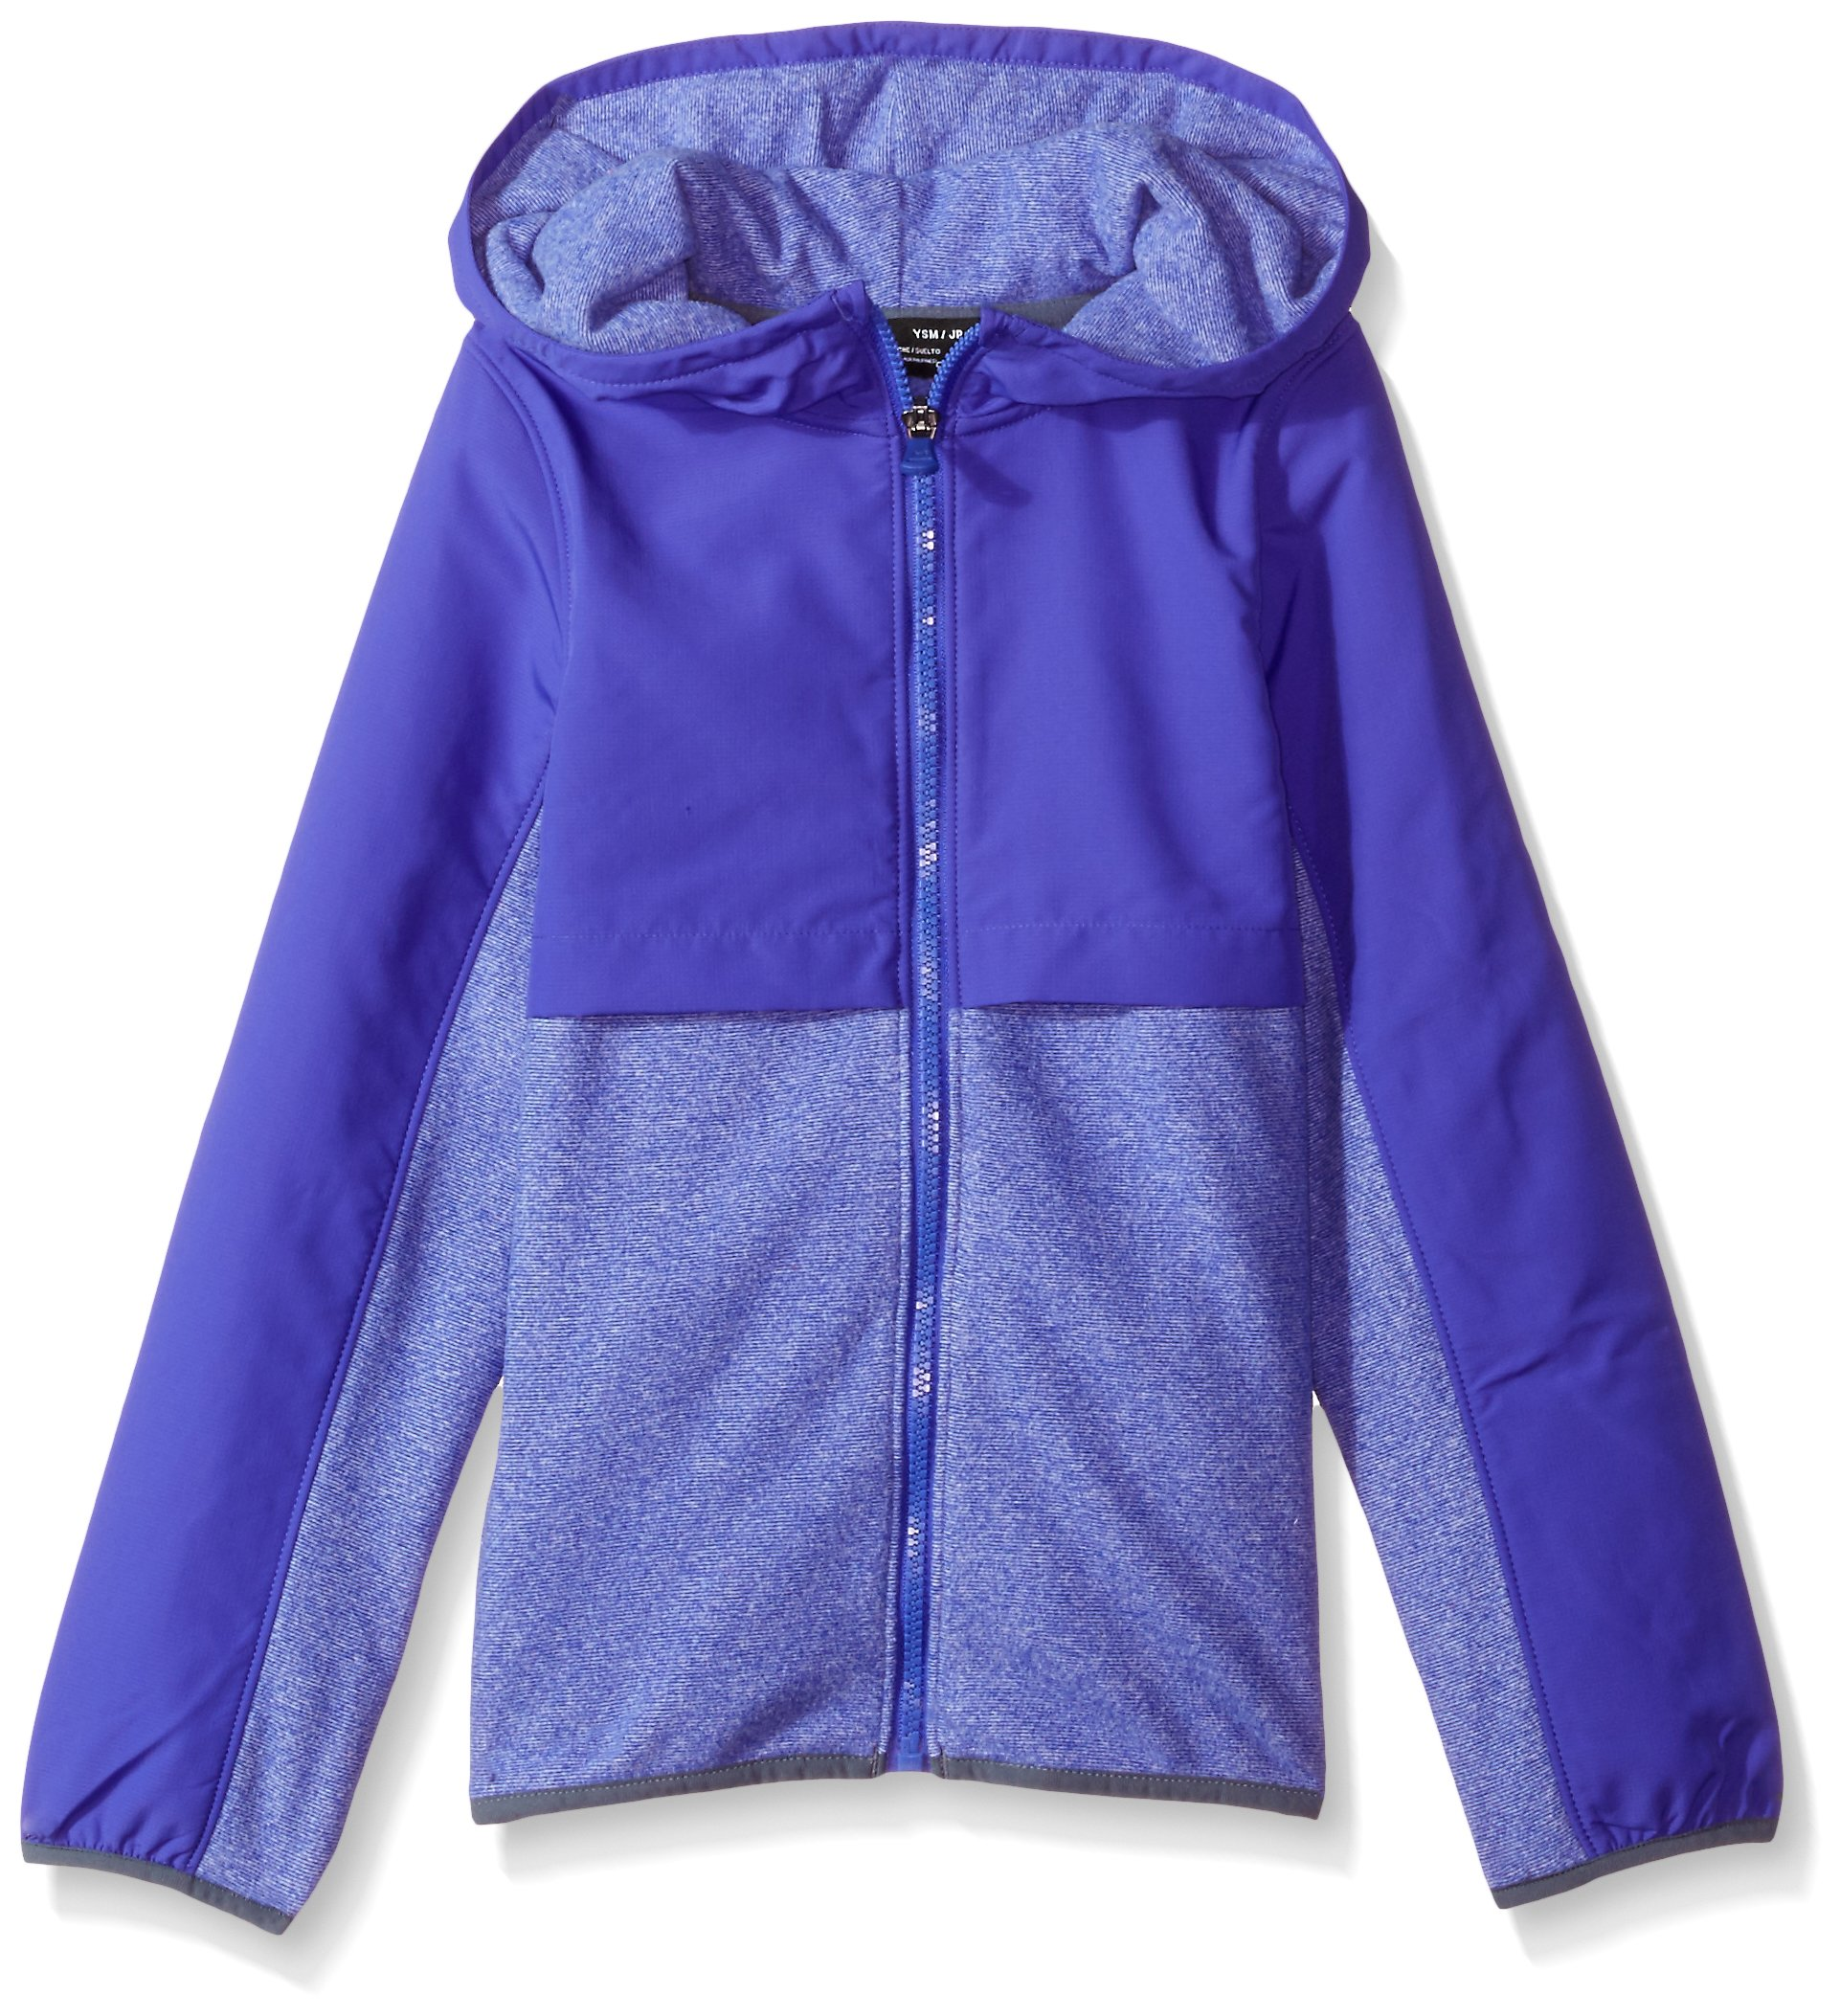 Girl's Under Armour Girls' Phenom Fleece Full Zip,Constellation Purple /Apollo Gray, Youth Small by Under Armour